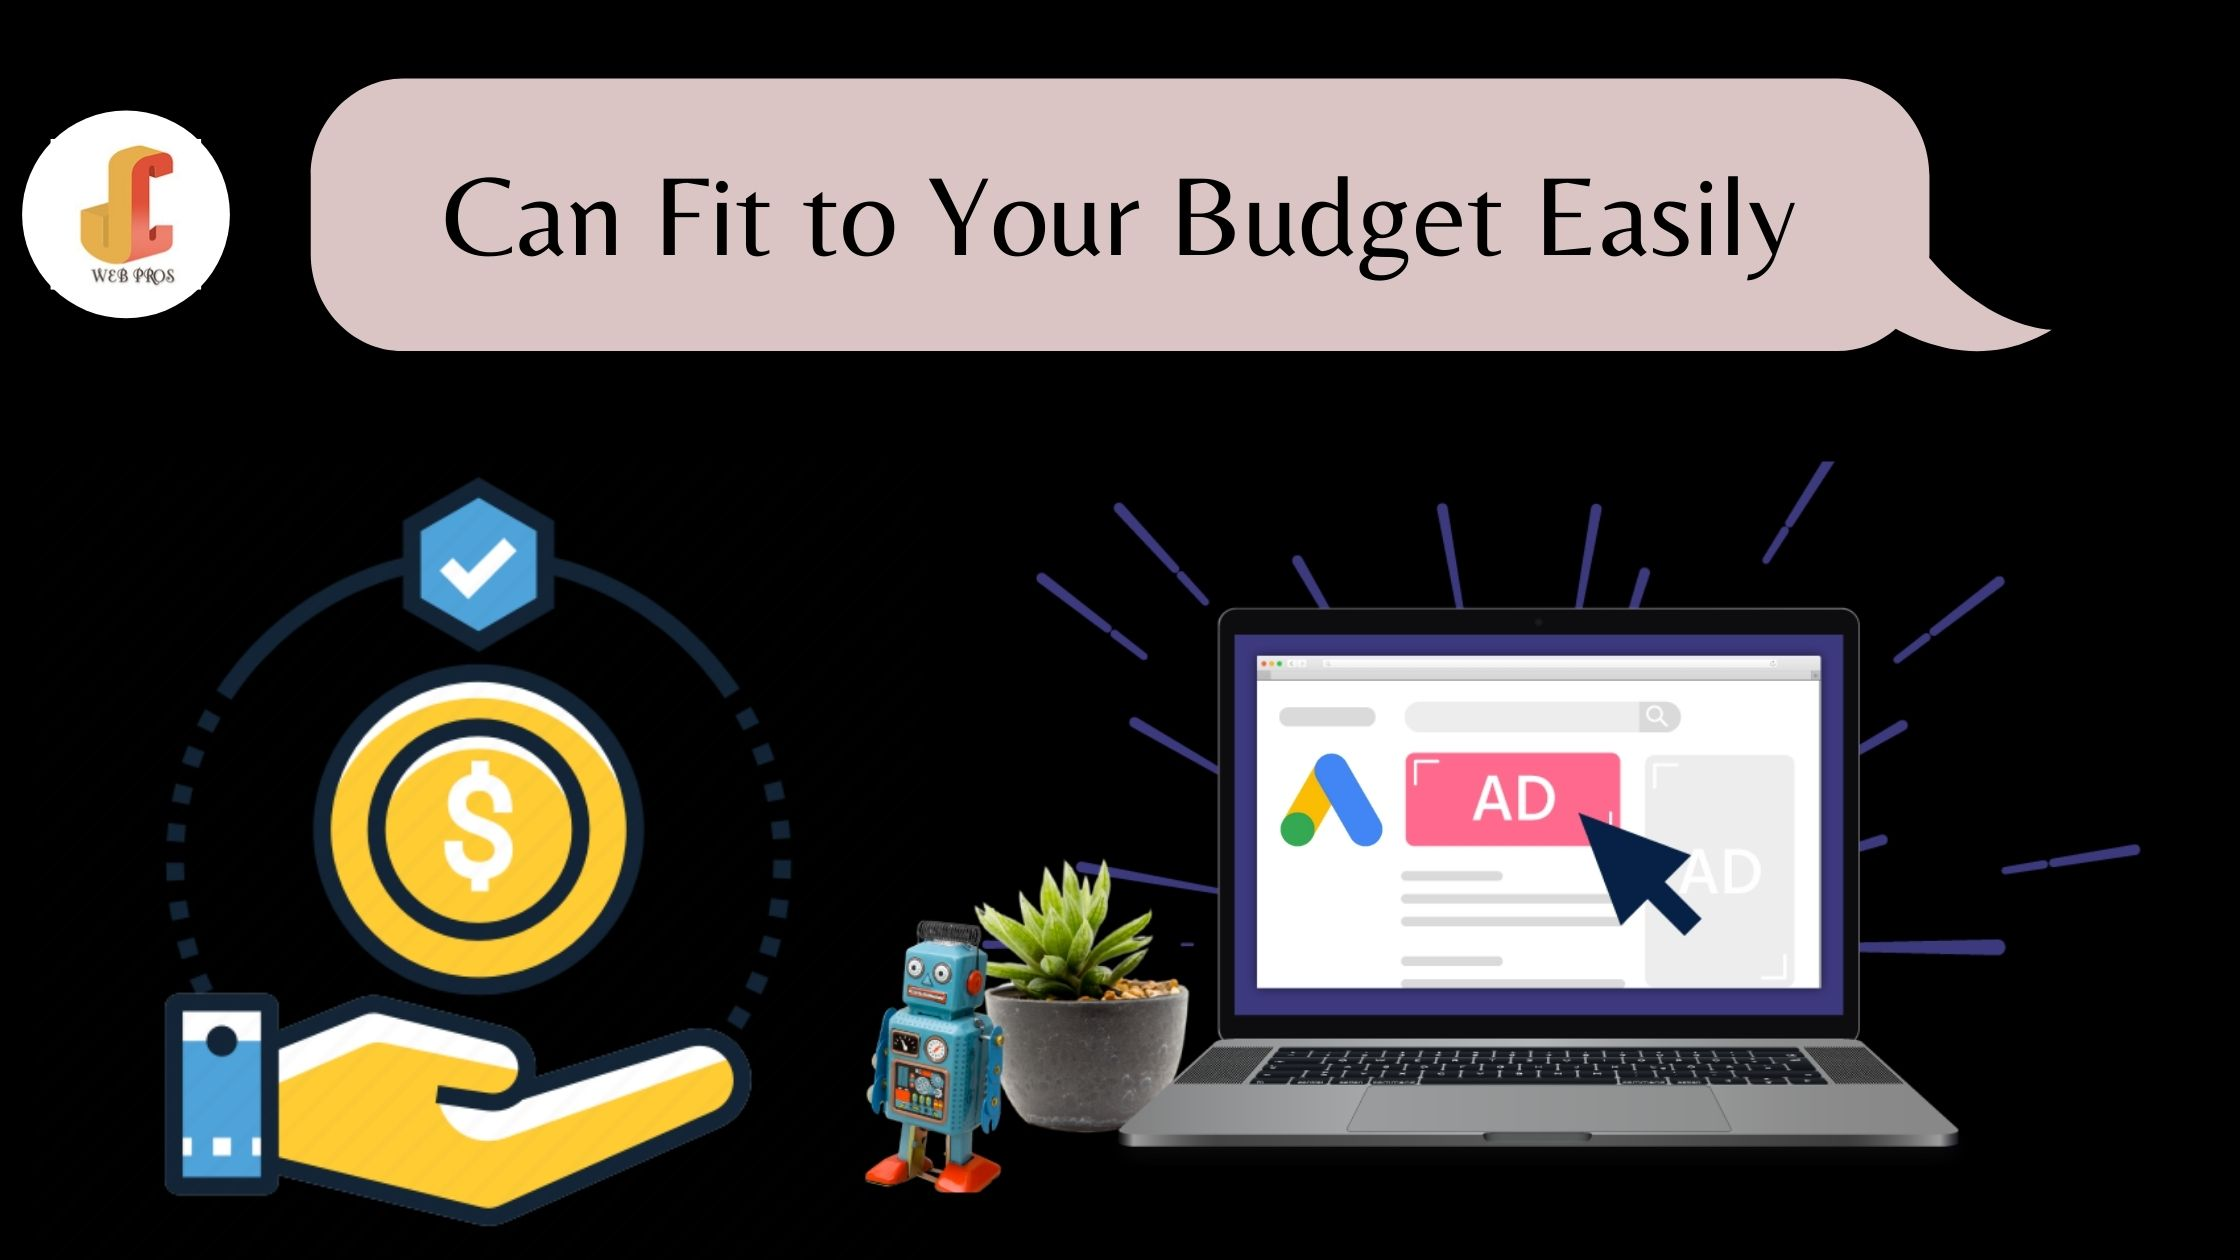 Can Fit to Your Budget Easily